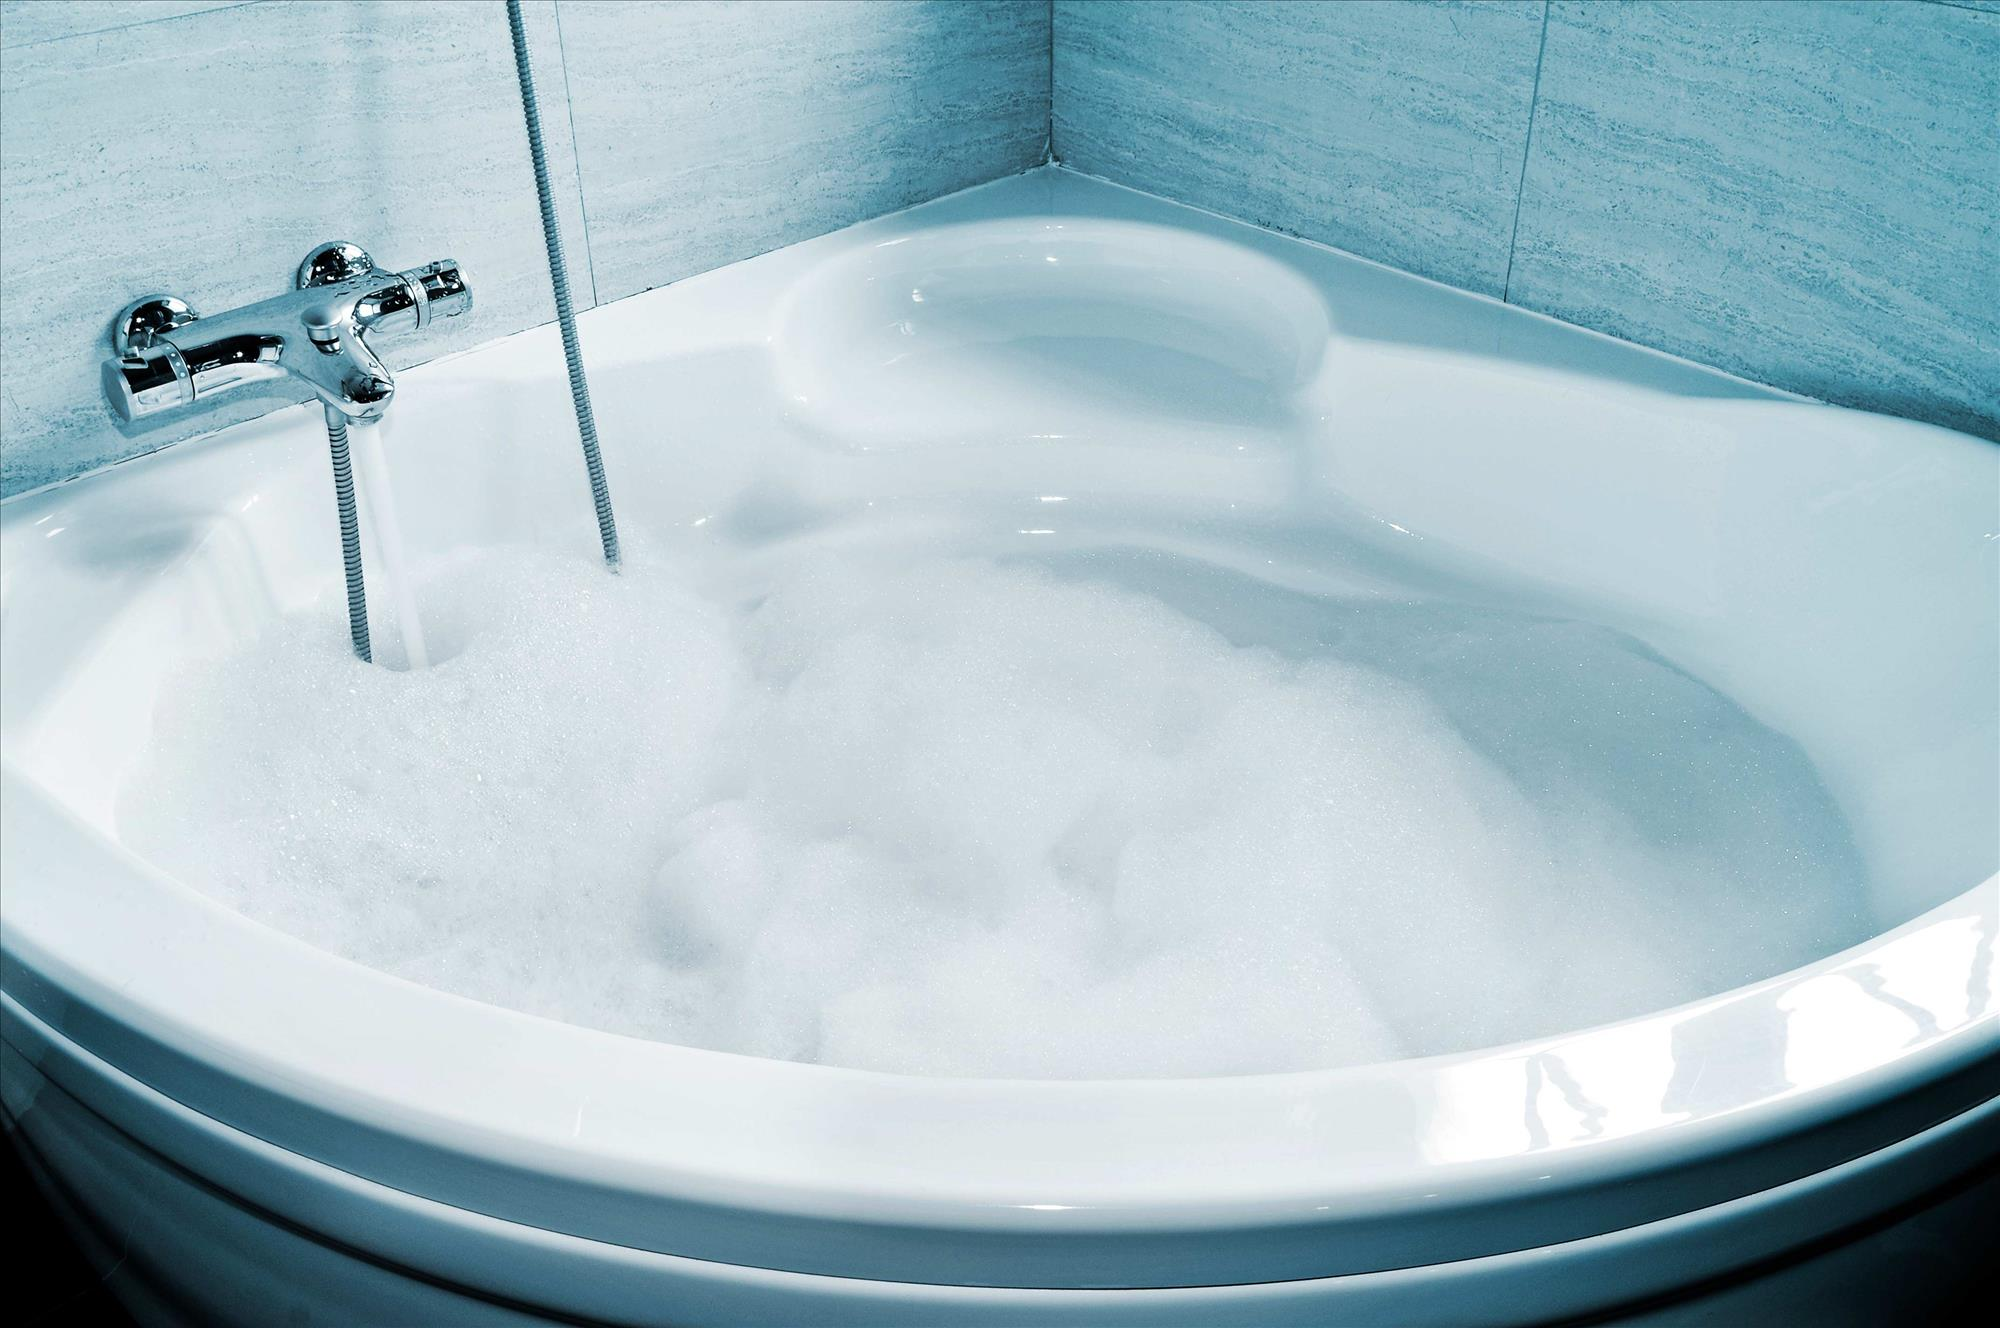 Home sweet home – celebrate your return from hospital with a relaxing bath